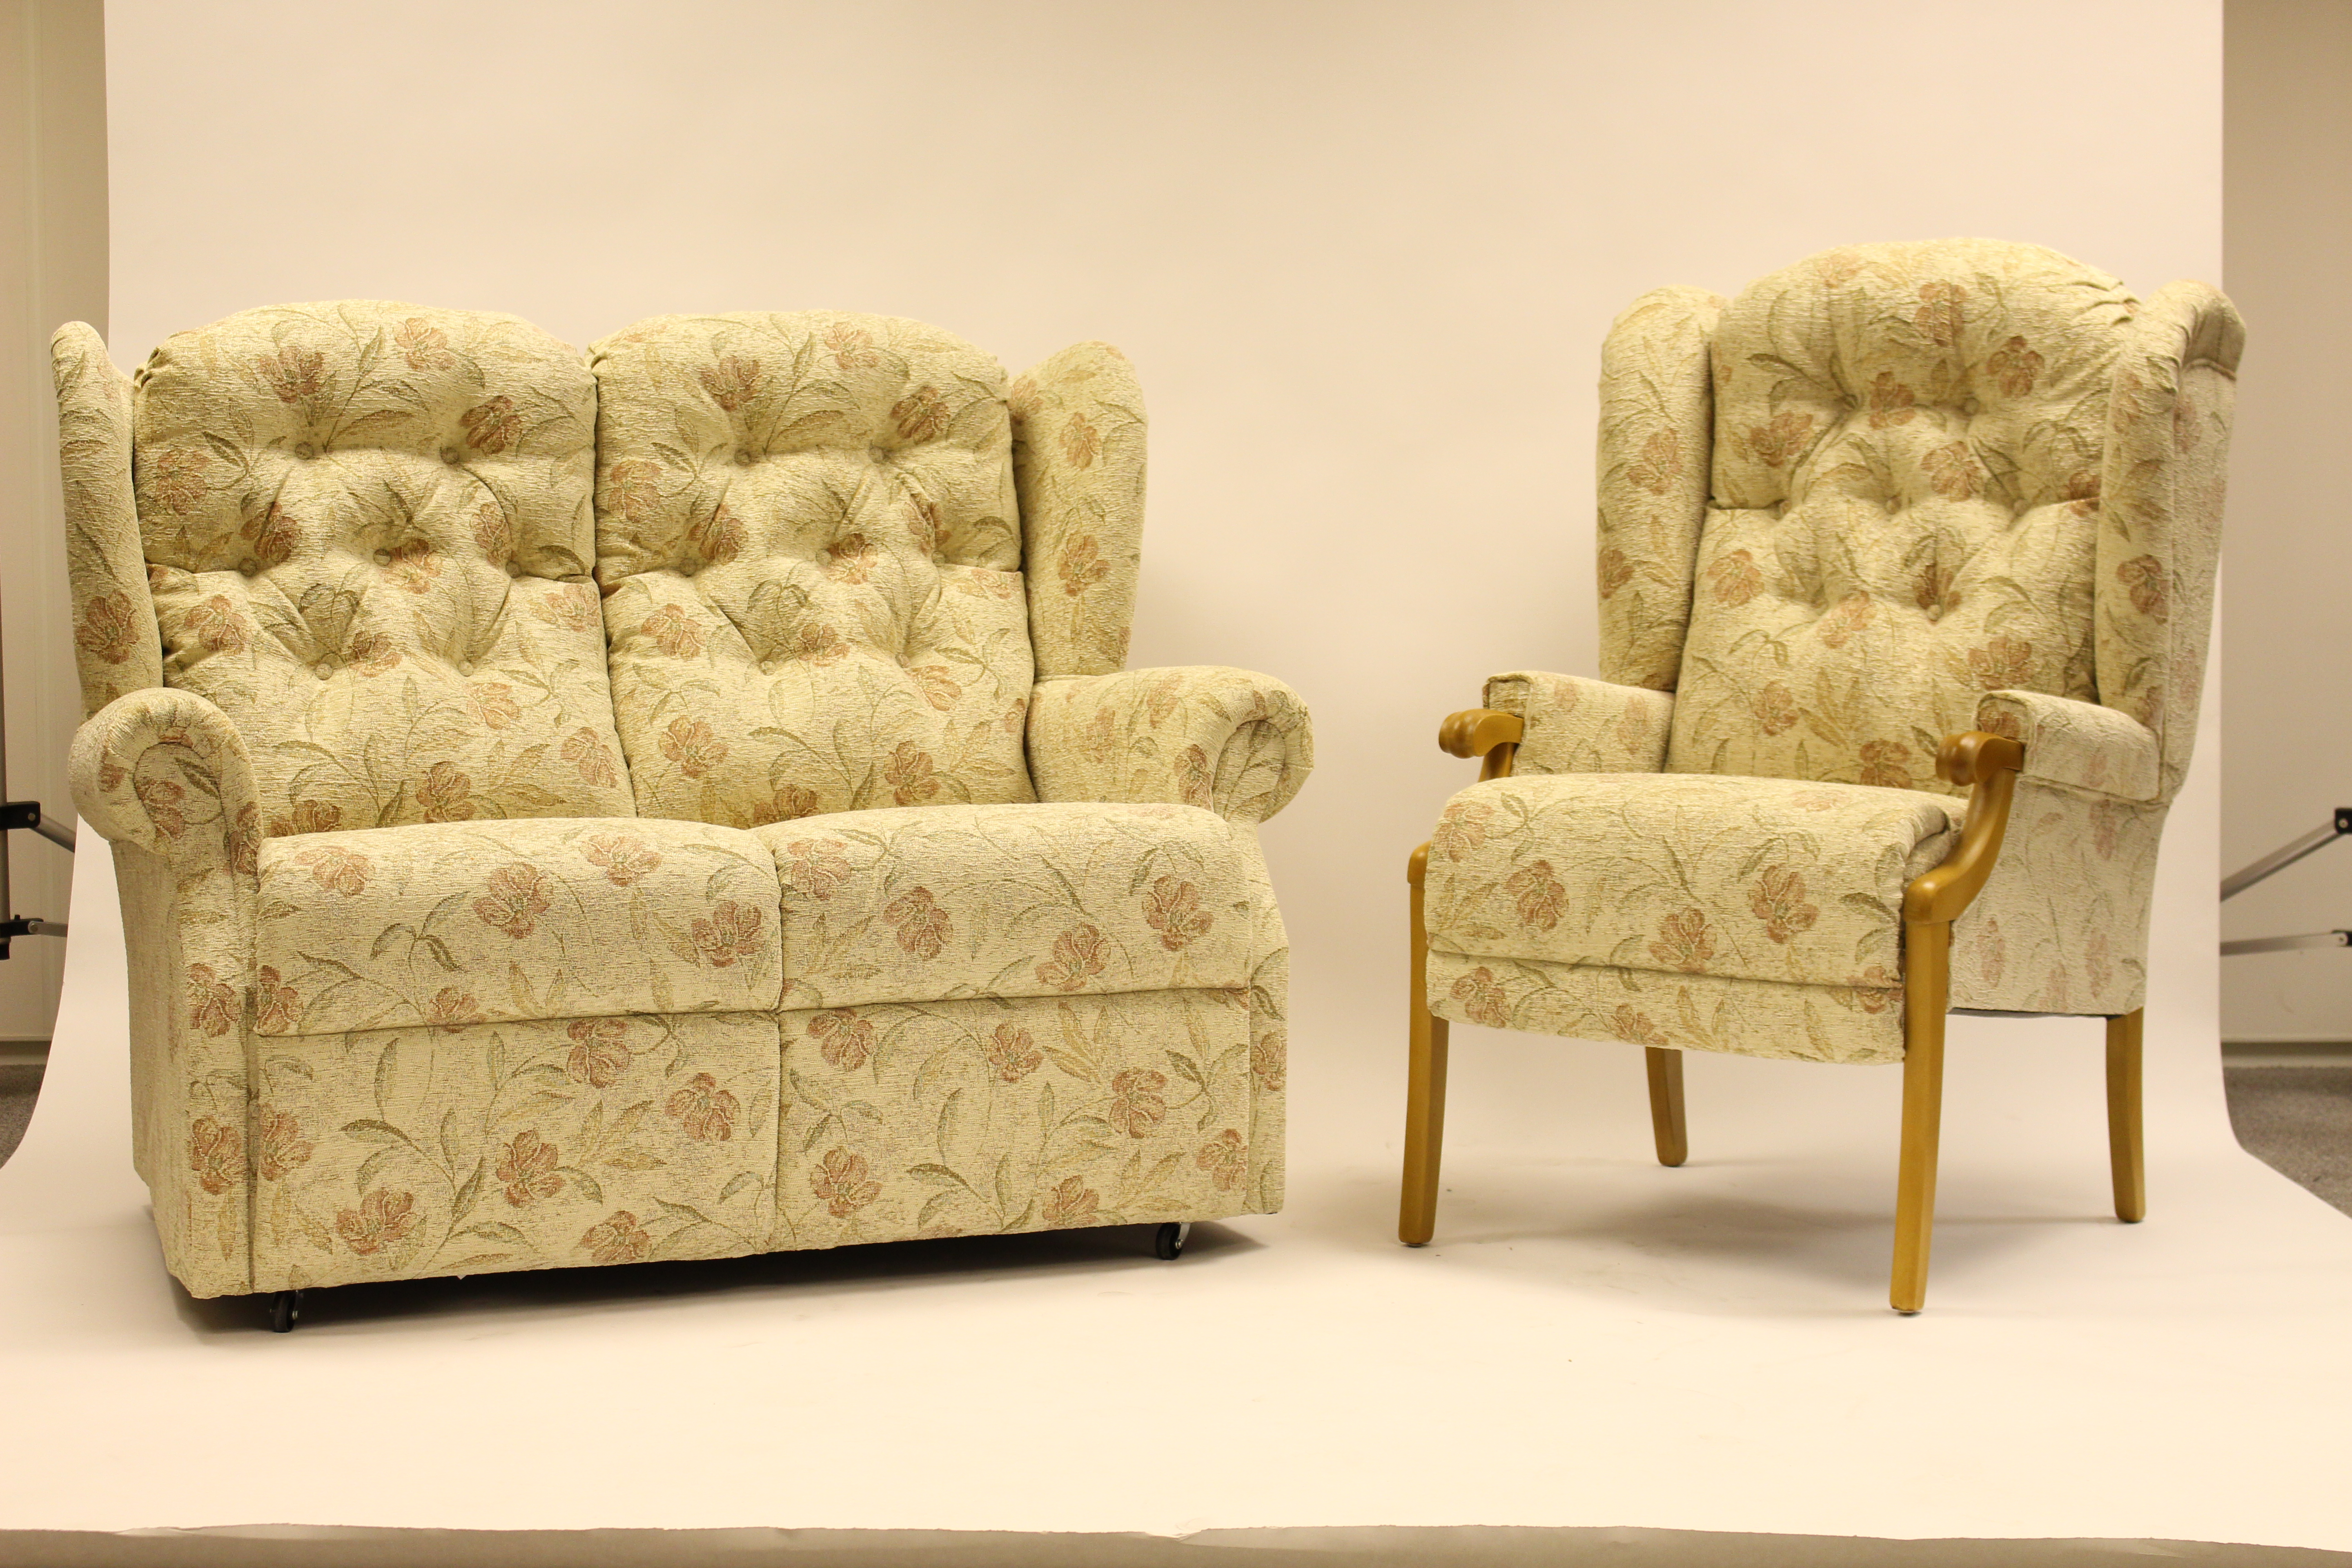 Abbey Uph 2 STR Sofa & Chair VN01